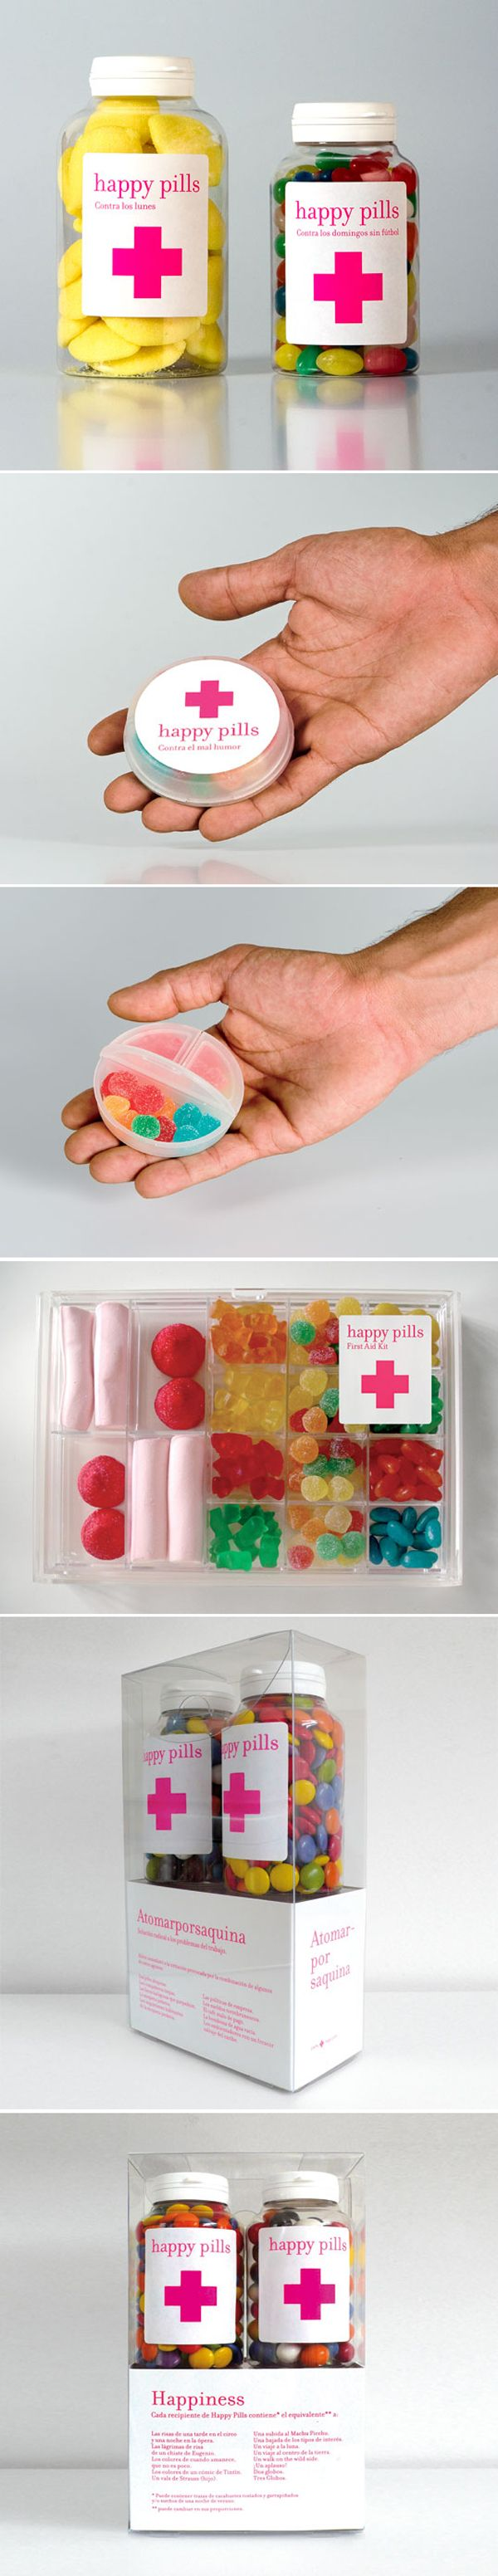 Happy pills, great gift.